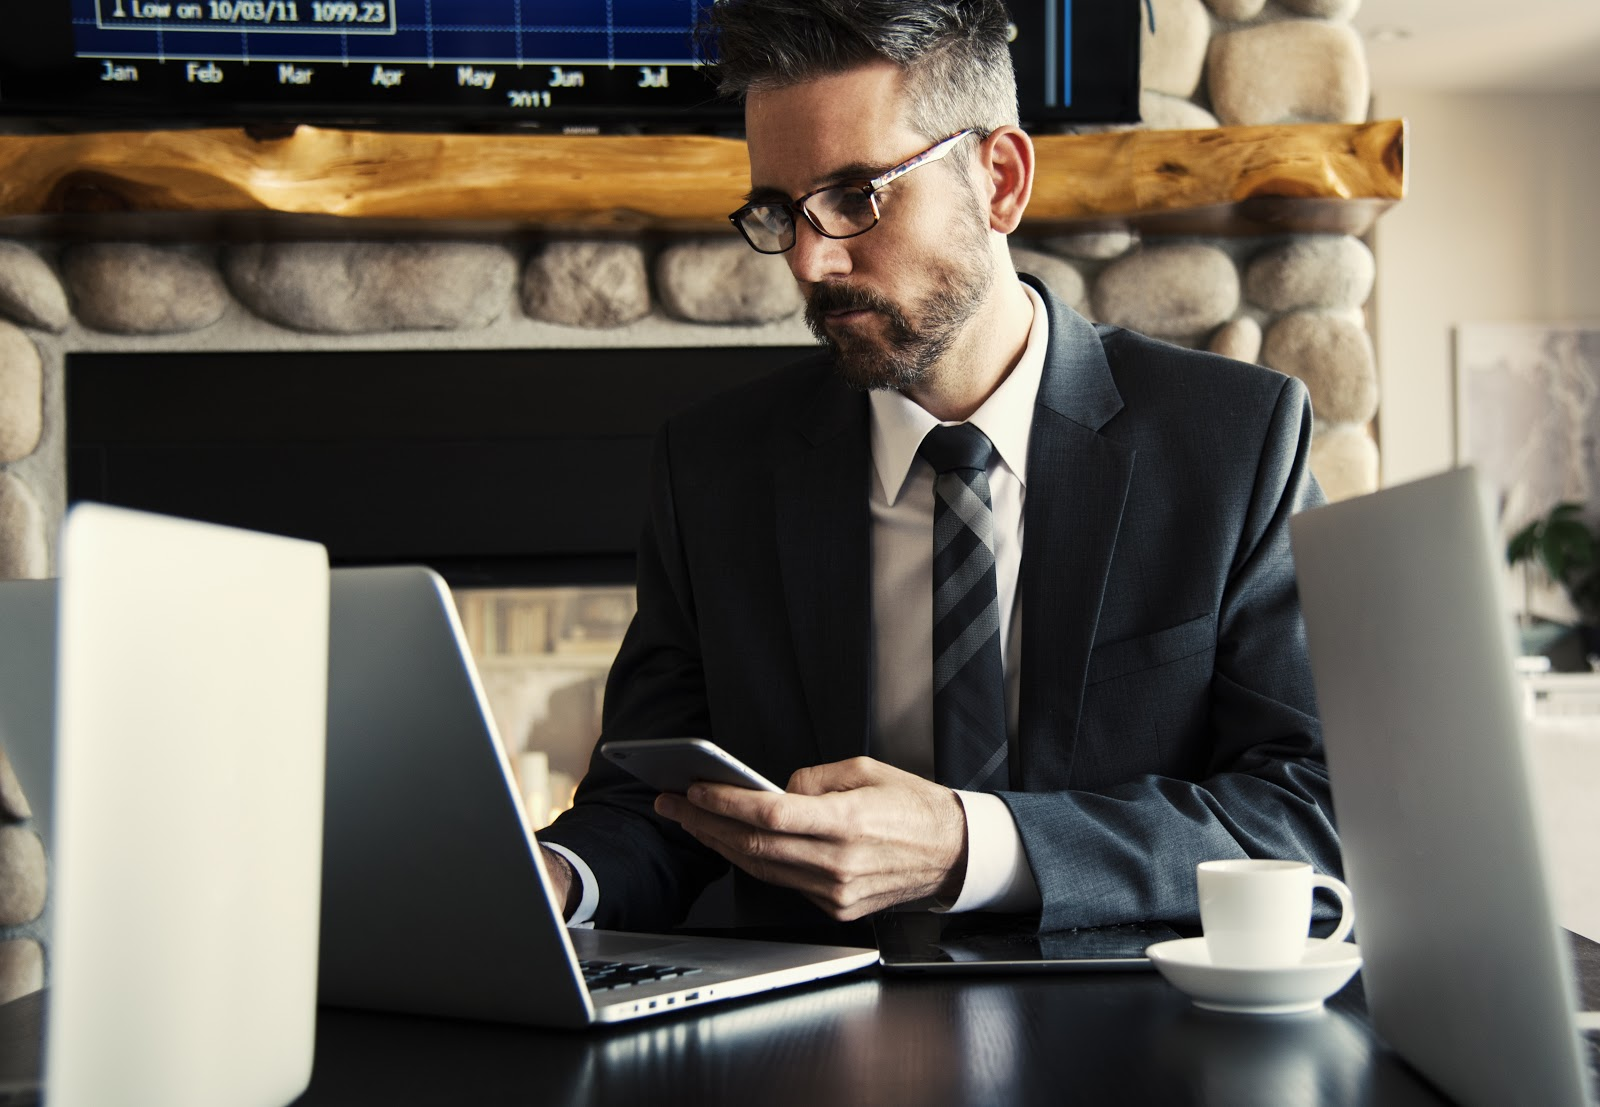 Professional man in suit using smartphone and laptop